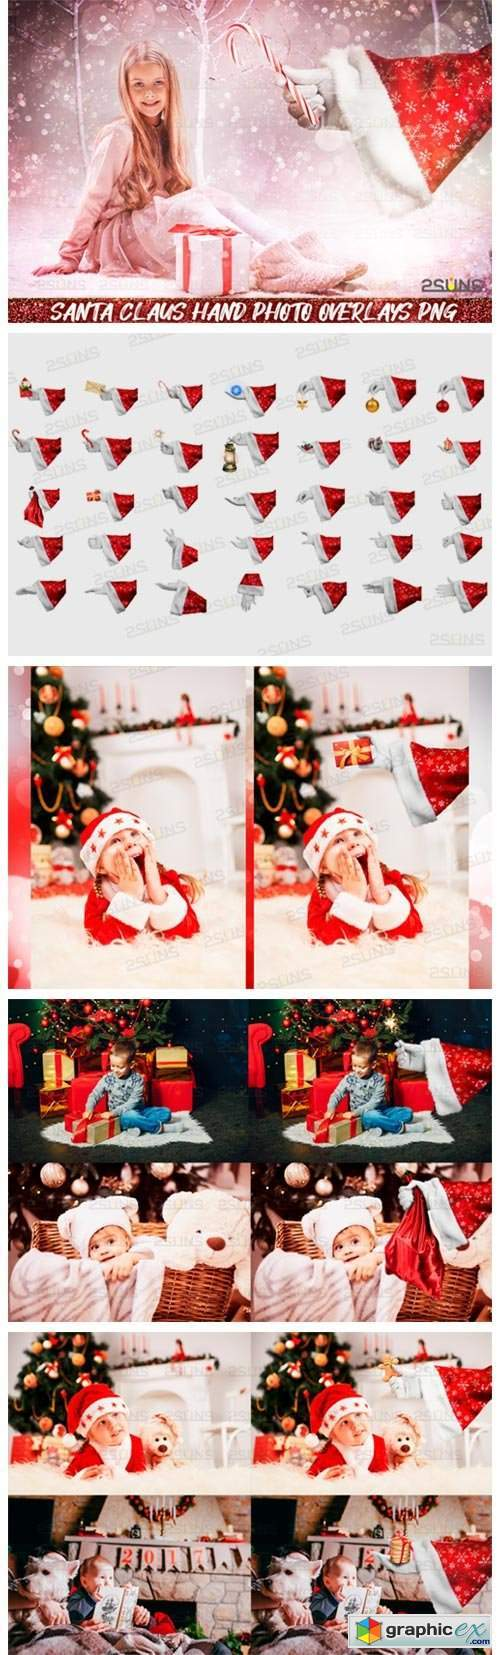 Christmas Overlays Santa Claus Hand